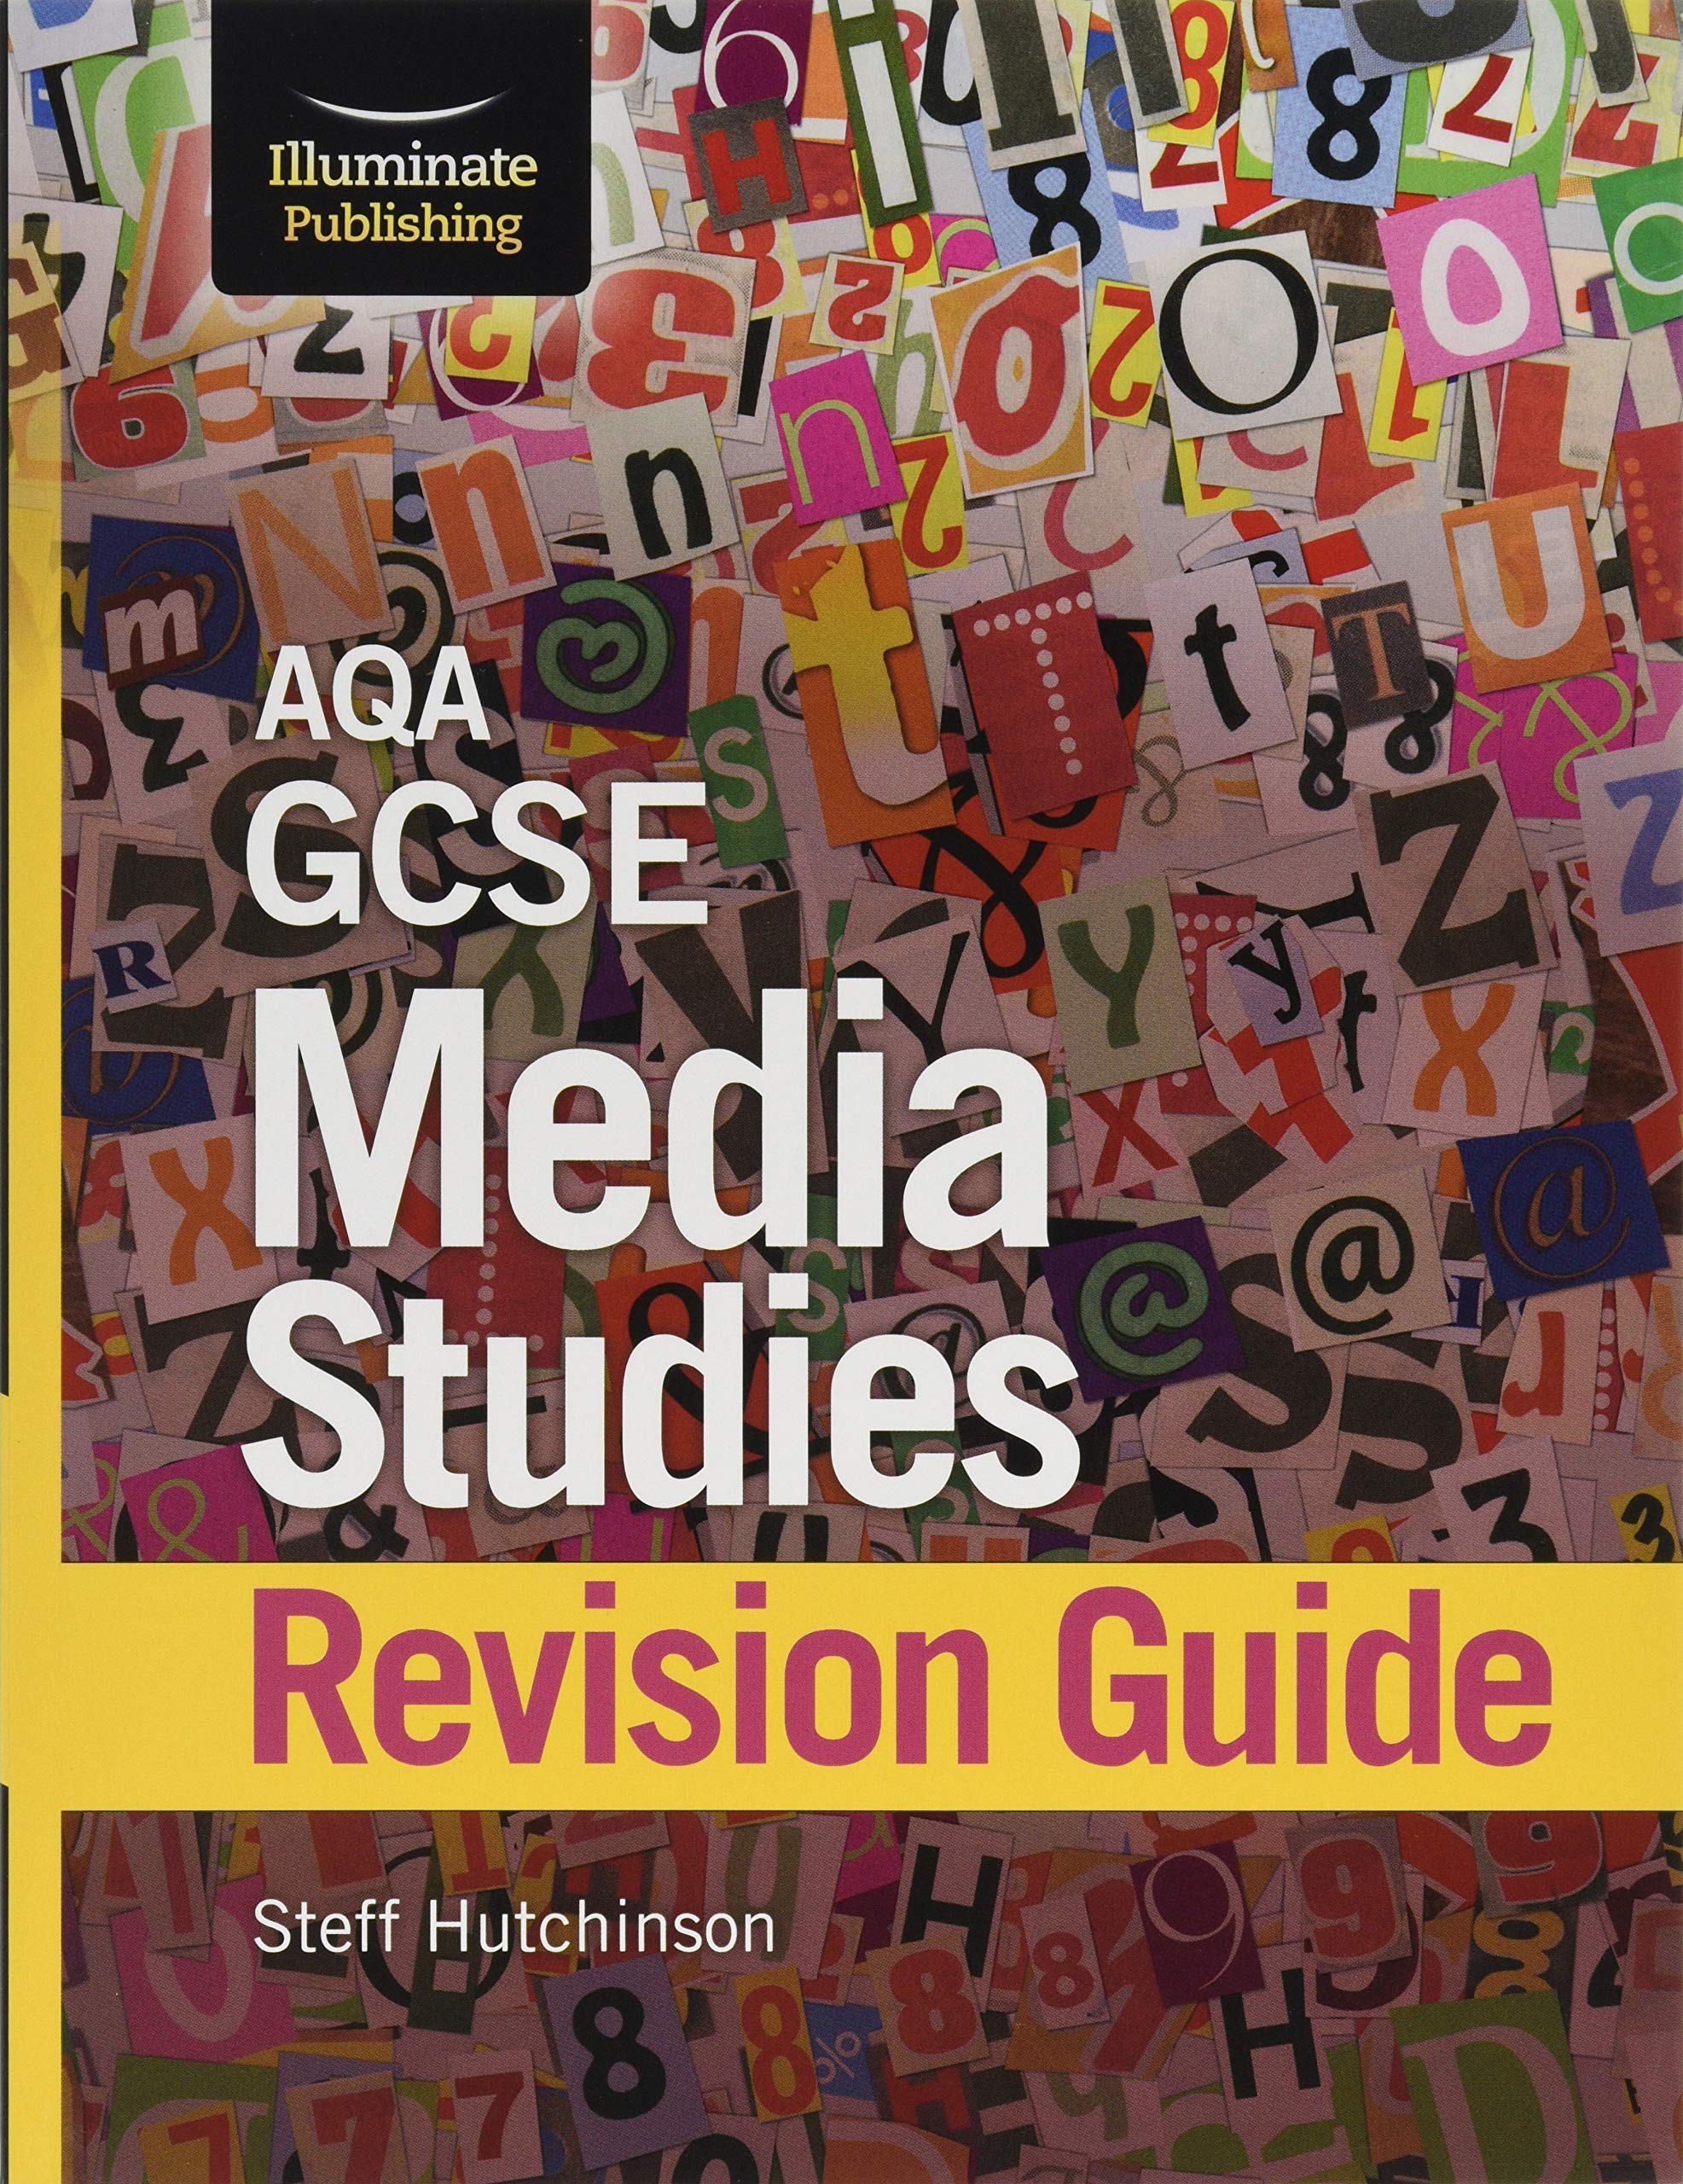 AQA GCSE Media Studies Revision Guide: Amazon co uk: Steff